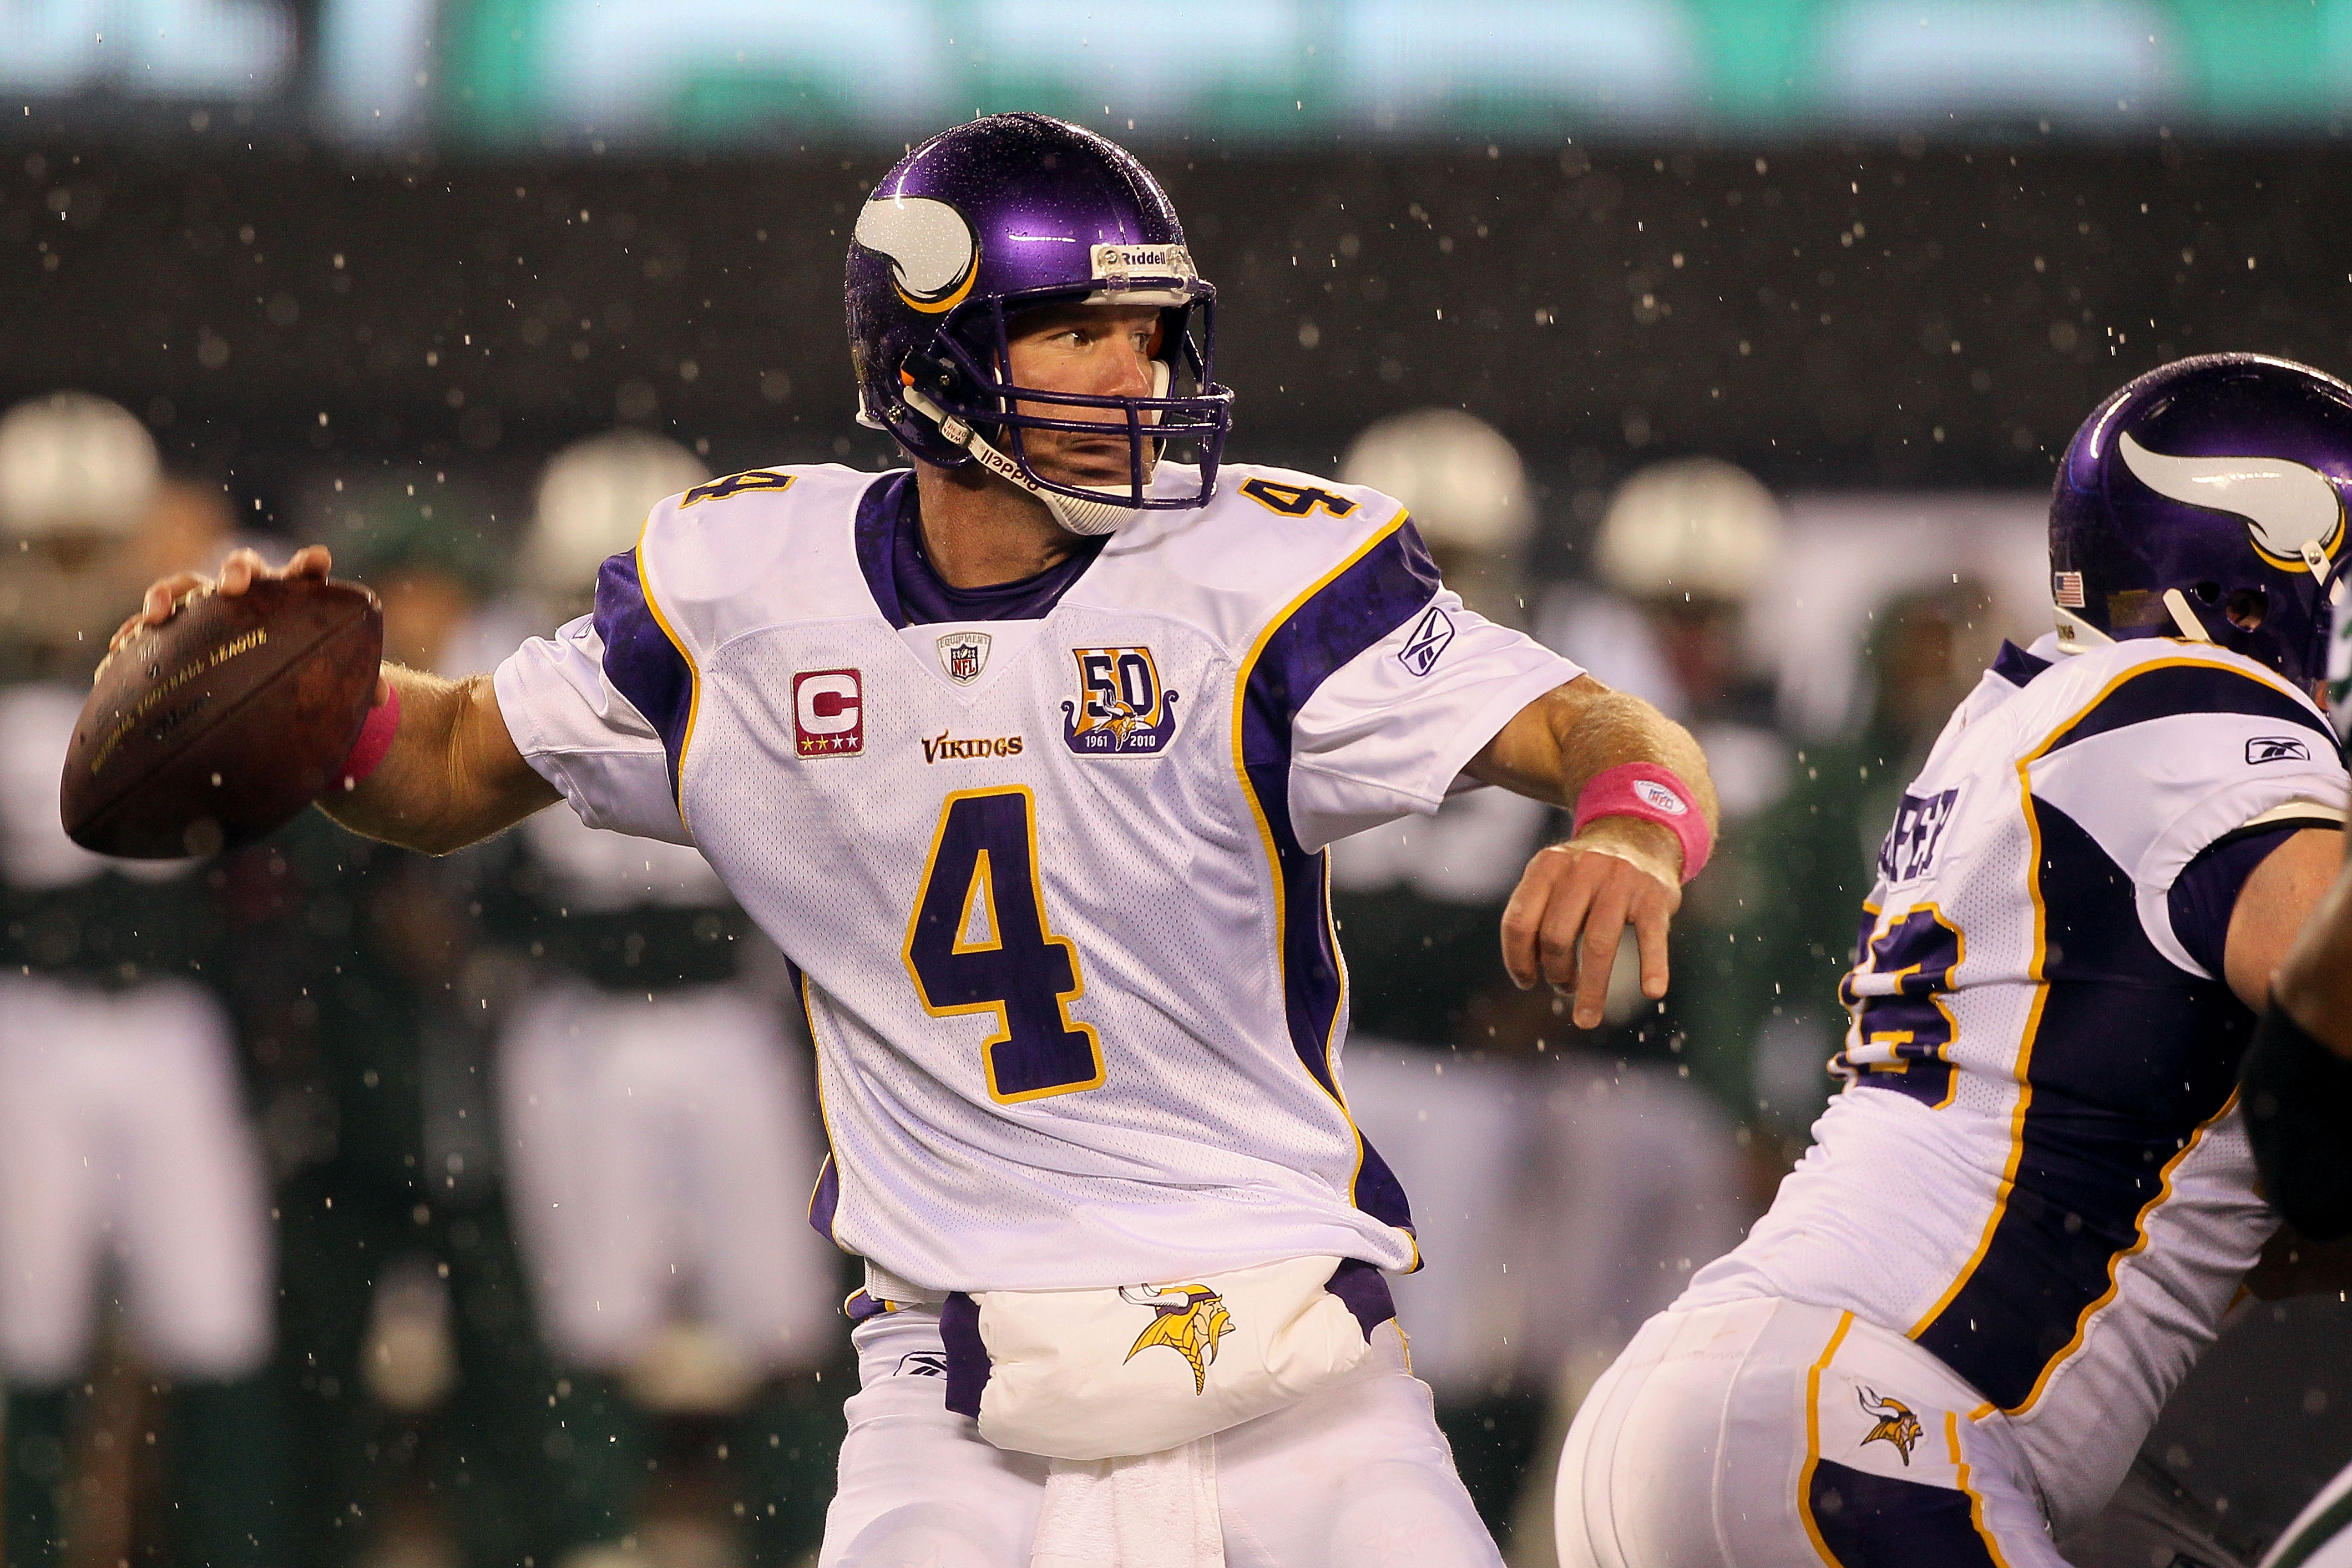 EAST RUTHERFORD, NJ - OCTOBER 11:  Brett Favre #4 of the Minnesota Vikings throws a pass against the New York Jets at New Meadowlands Stadium on October 11, 2010 in East Rutherford, New Jersey.  (Photo by Jim McIsaac/Getty Images)